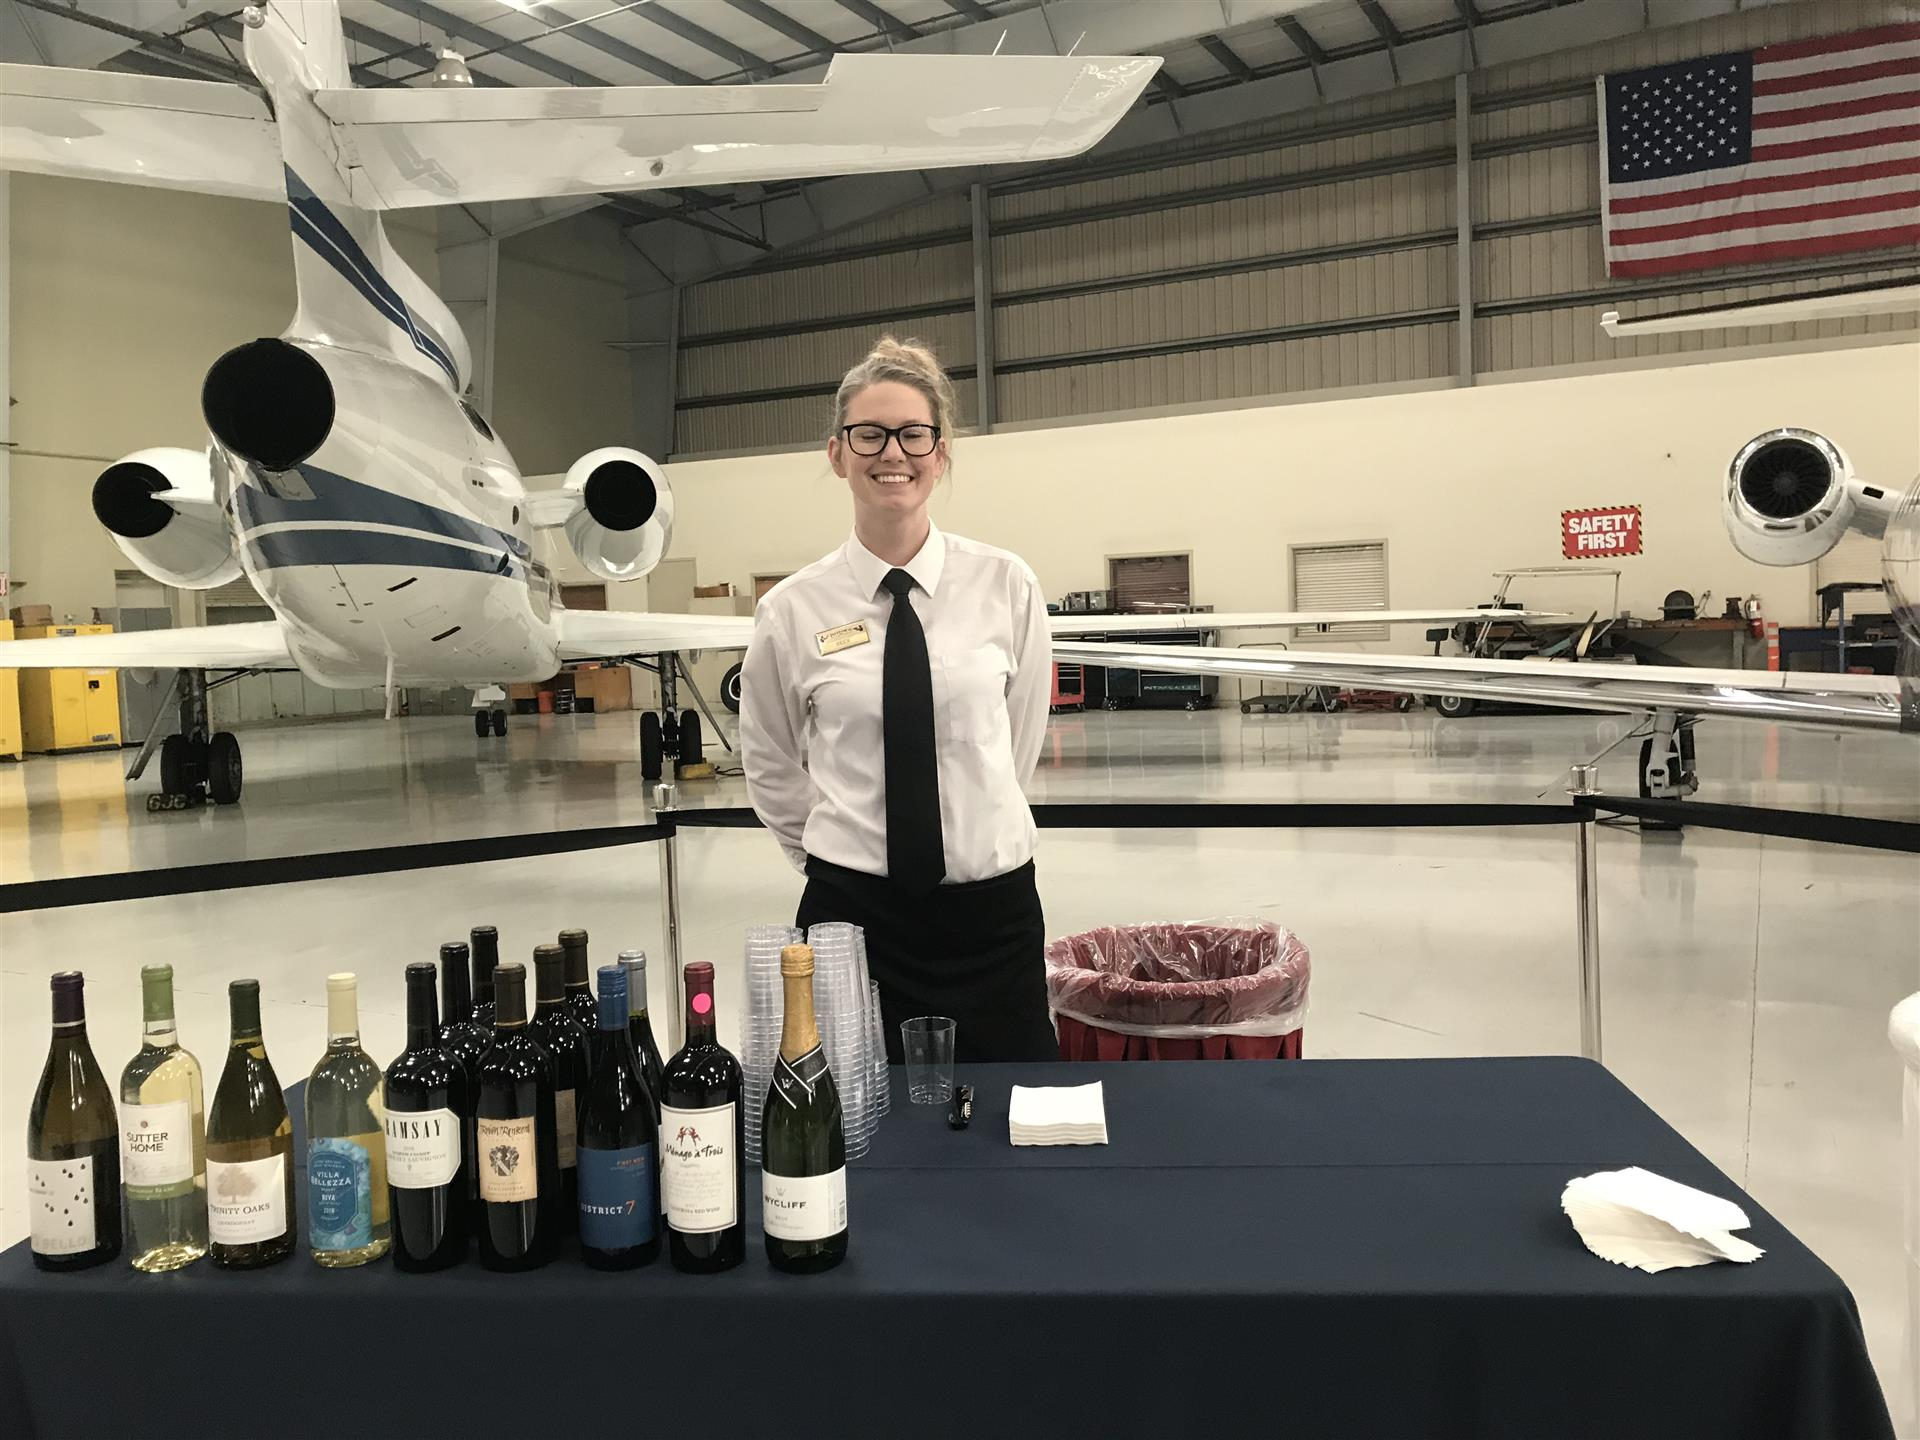 a lady smiling at the camera while sampling wine